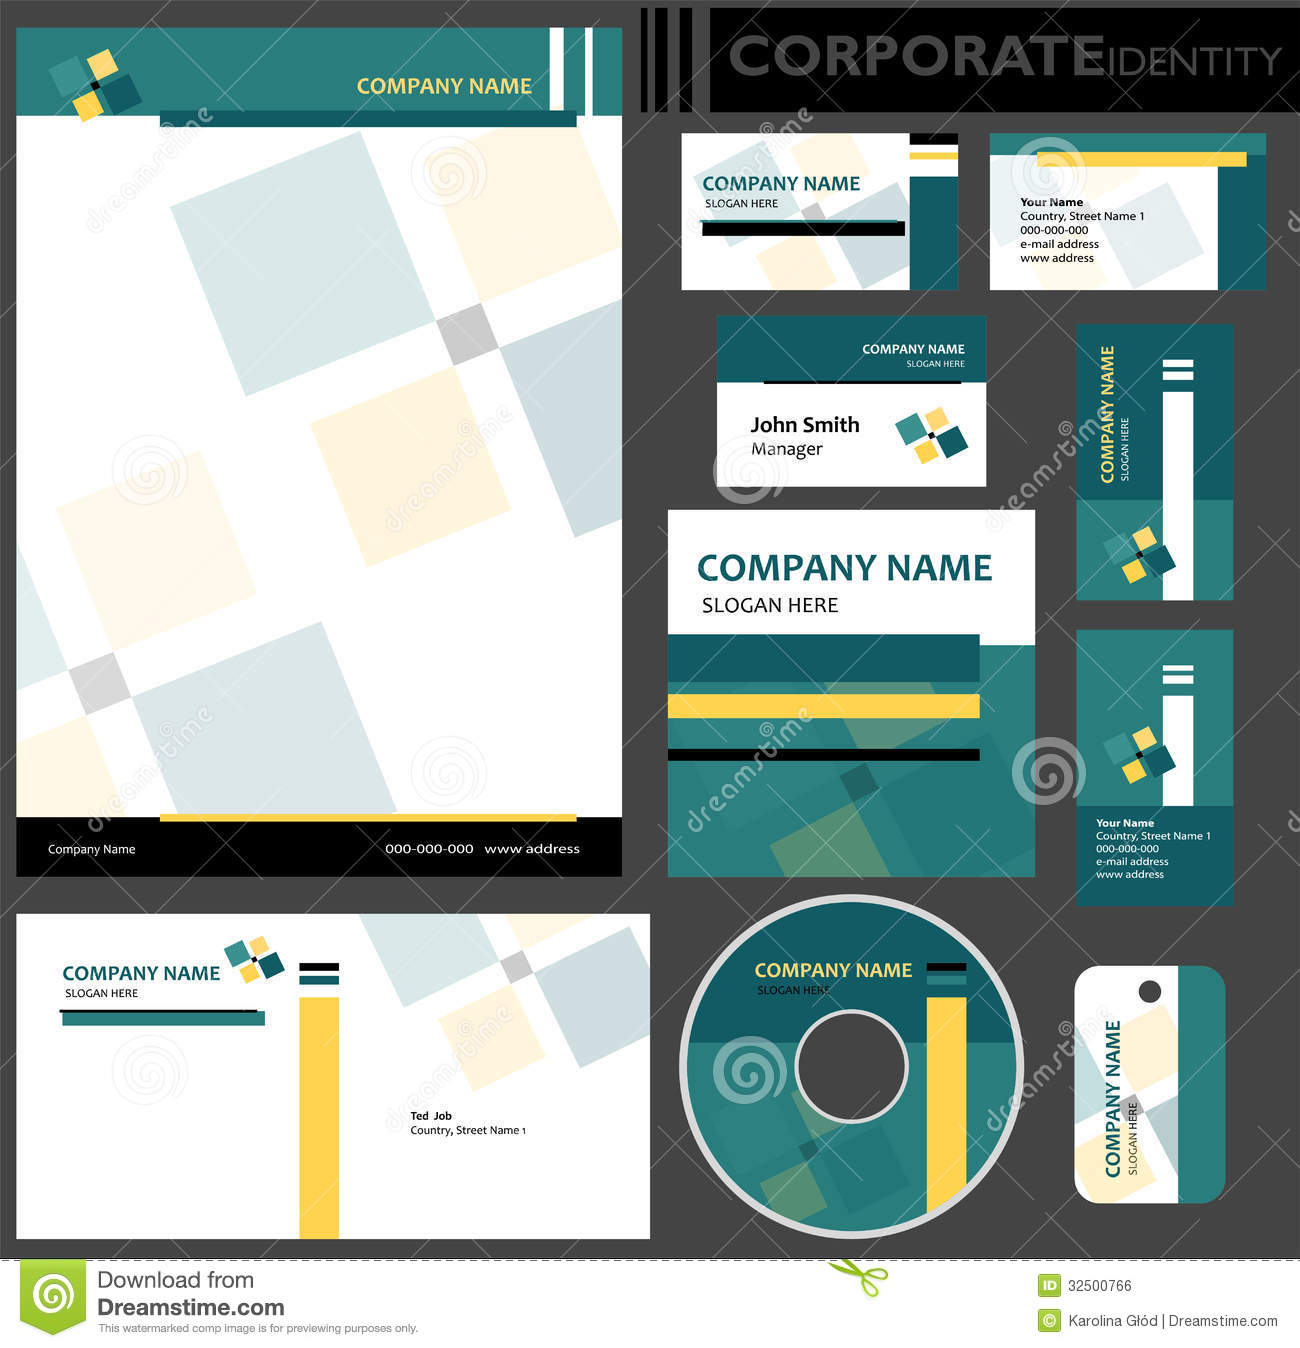 Corporate Identity Template Royalty Free Stock Image